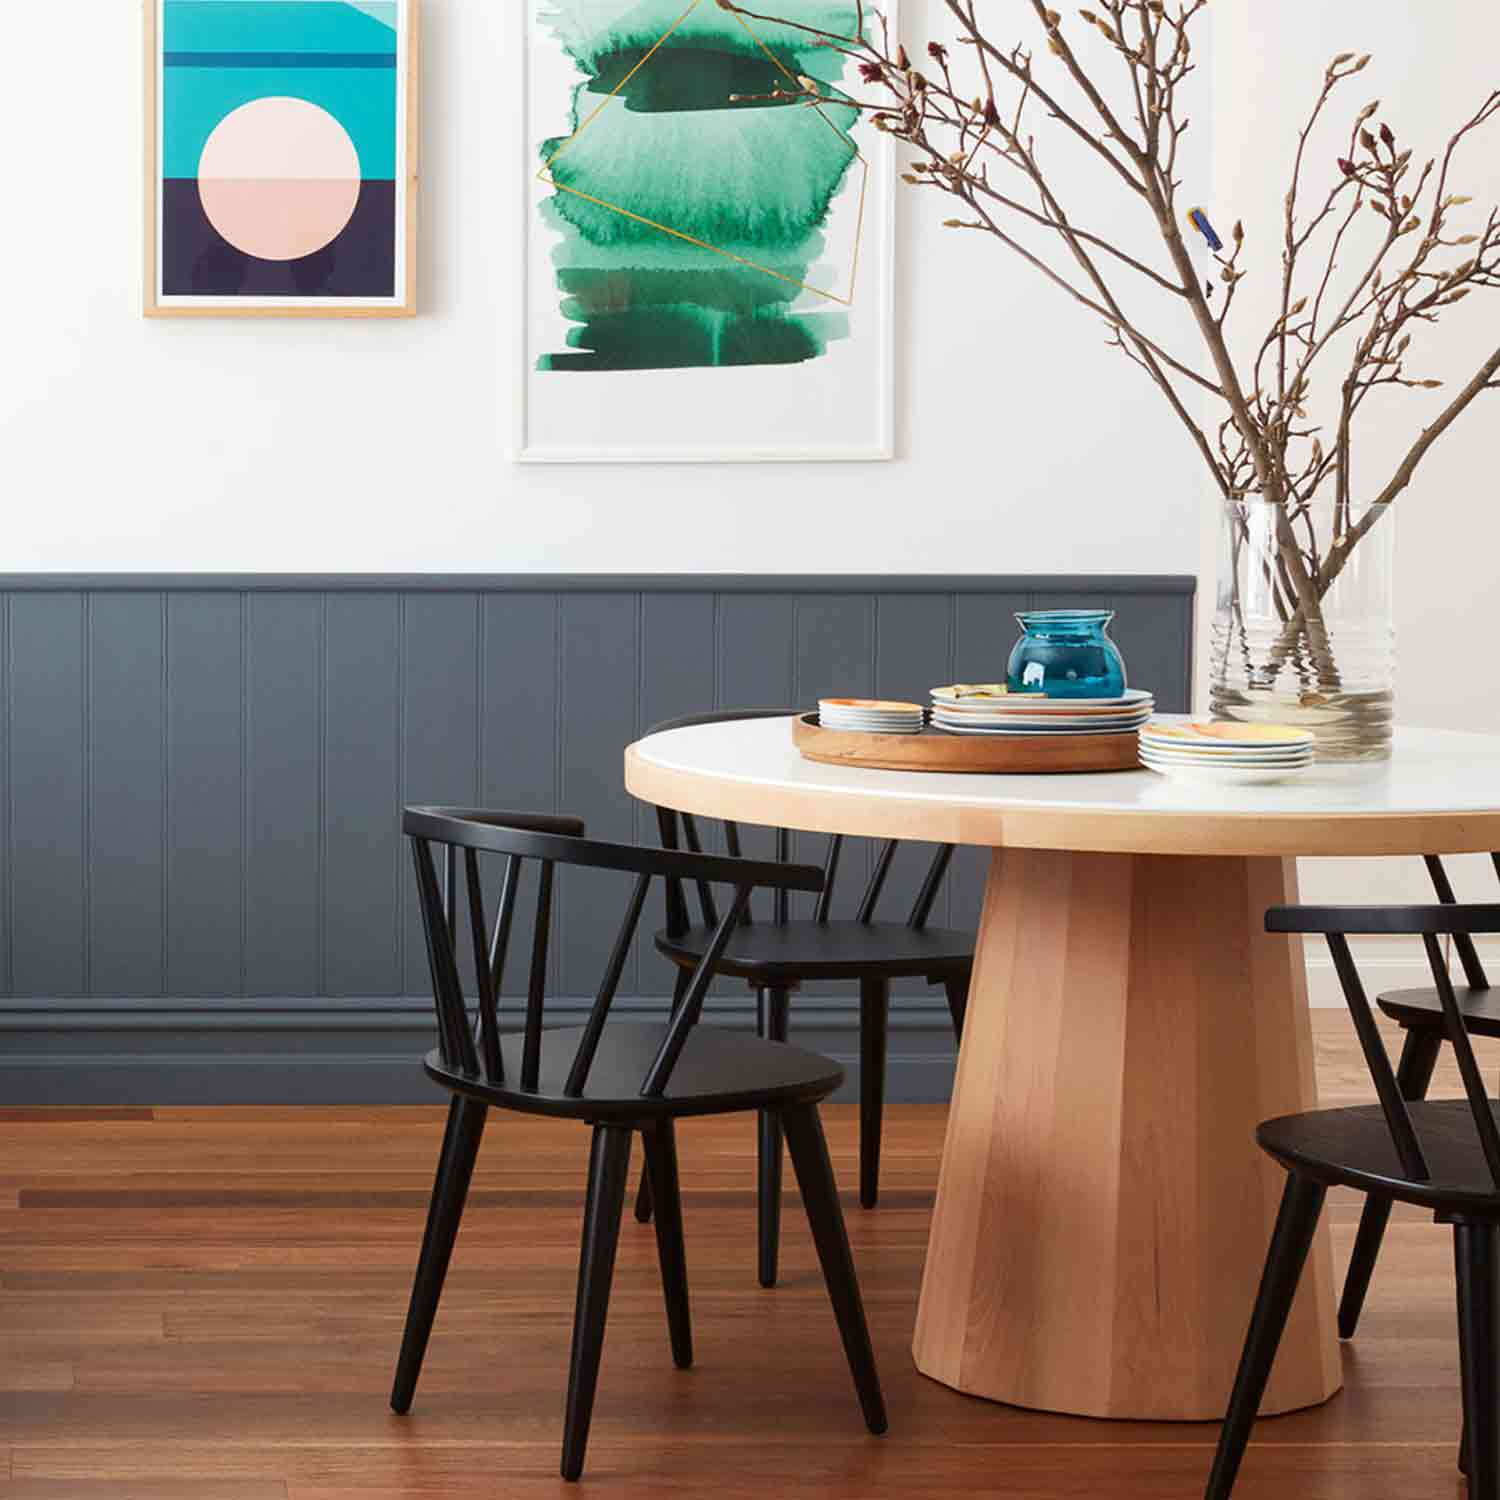 Silva Ridge Byron Bay Spotted Gum dining room with grey wall panel